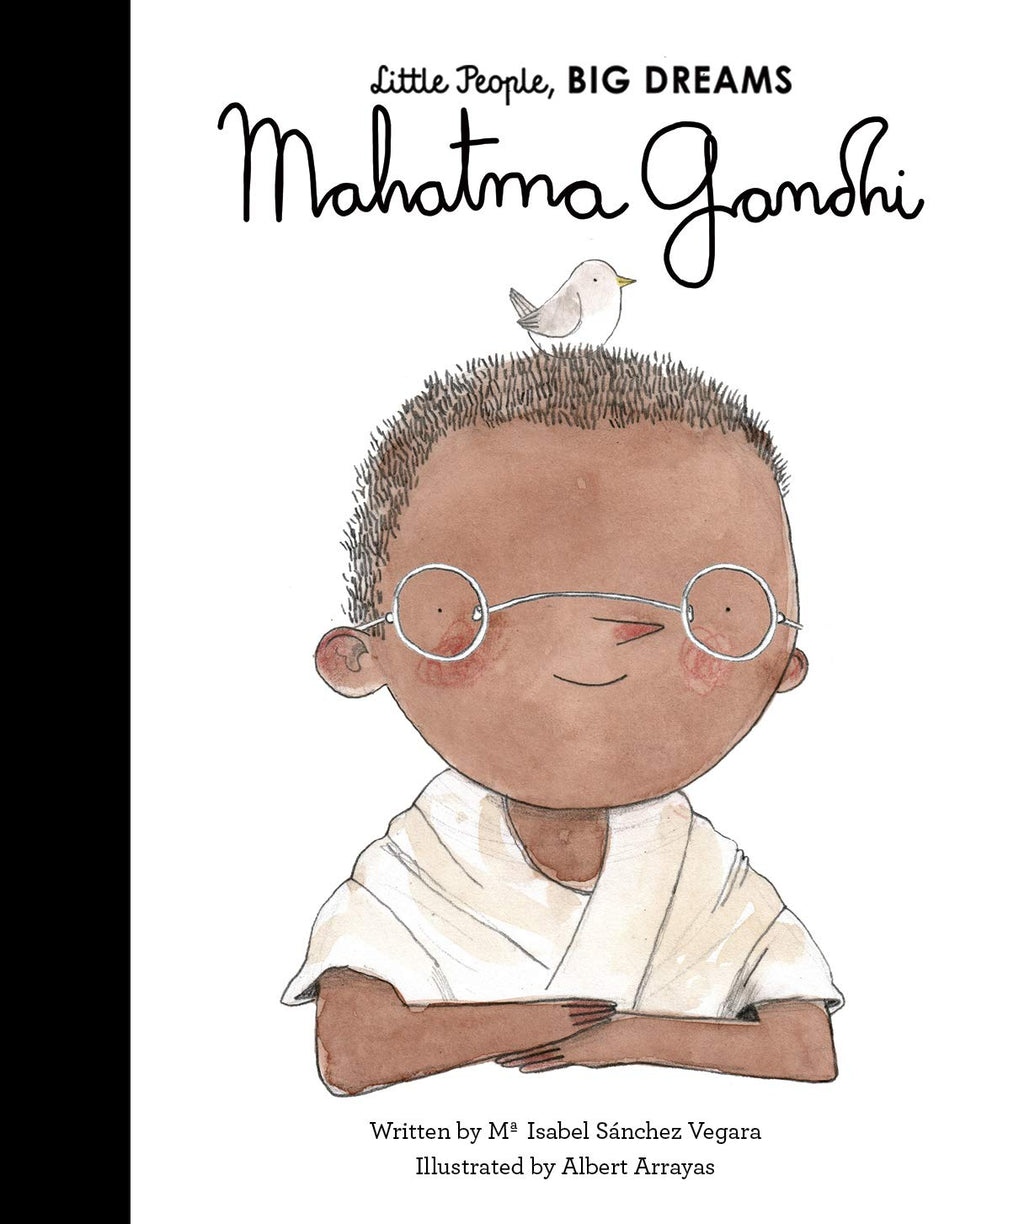 Book - Little People, Big Dreams - Mahatma Gandhi